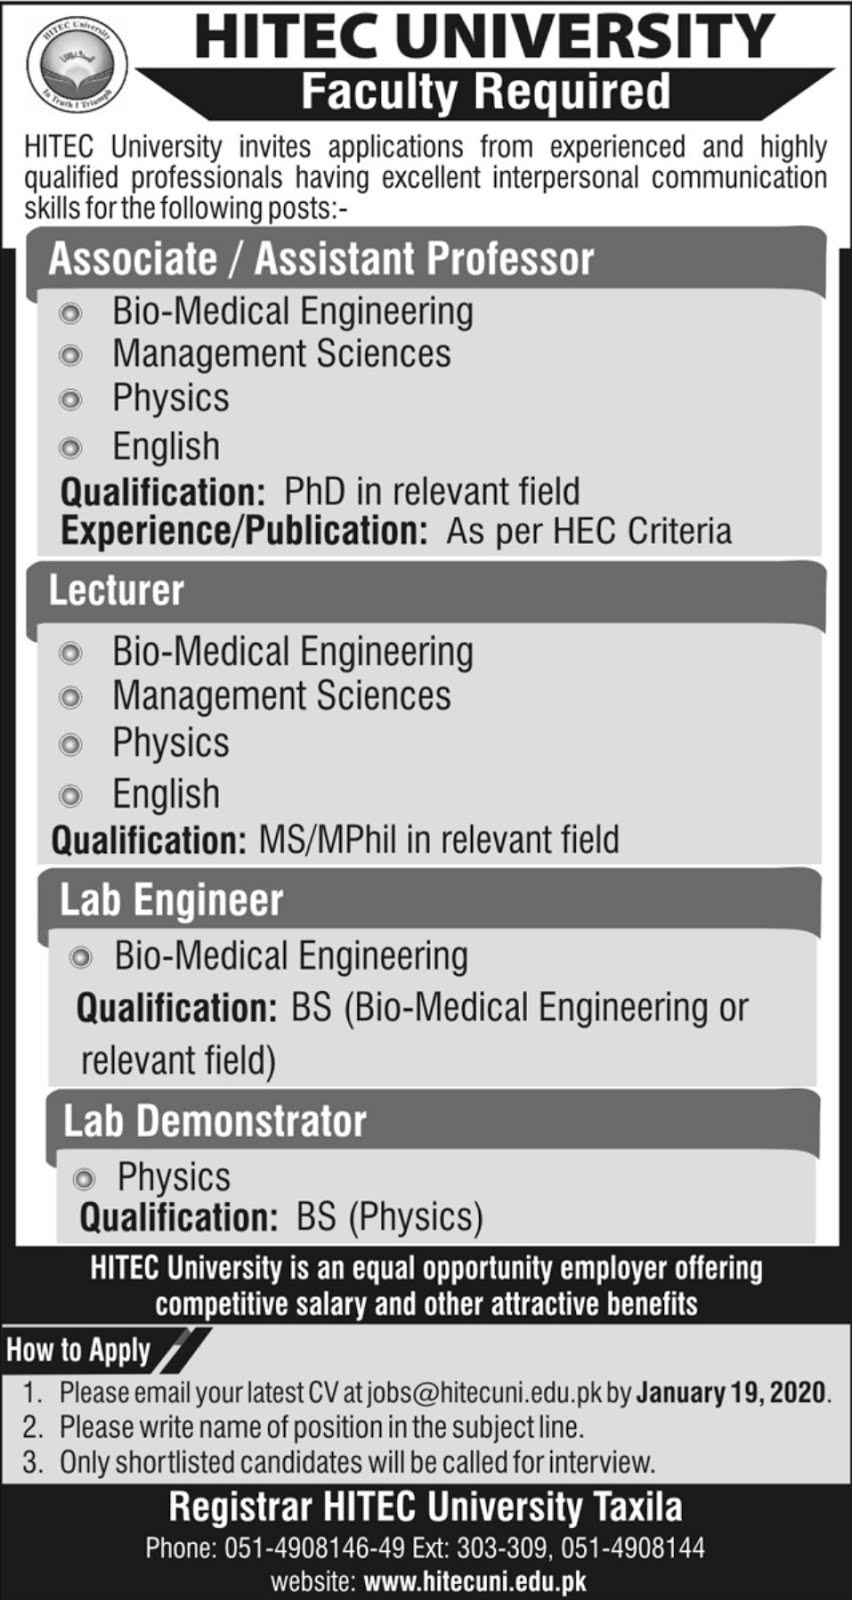 HITEC University Taxila Jobs 2020 Advertisement